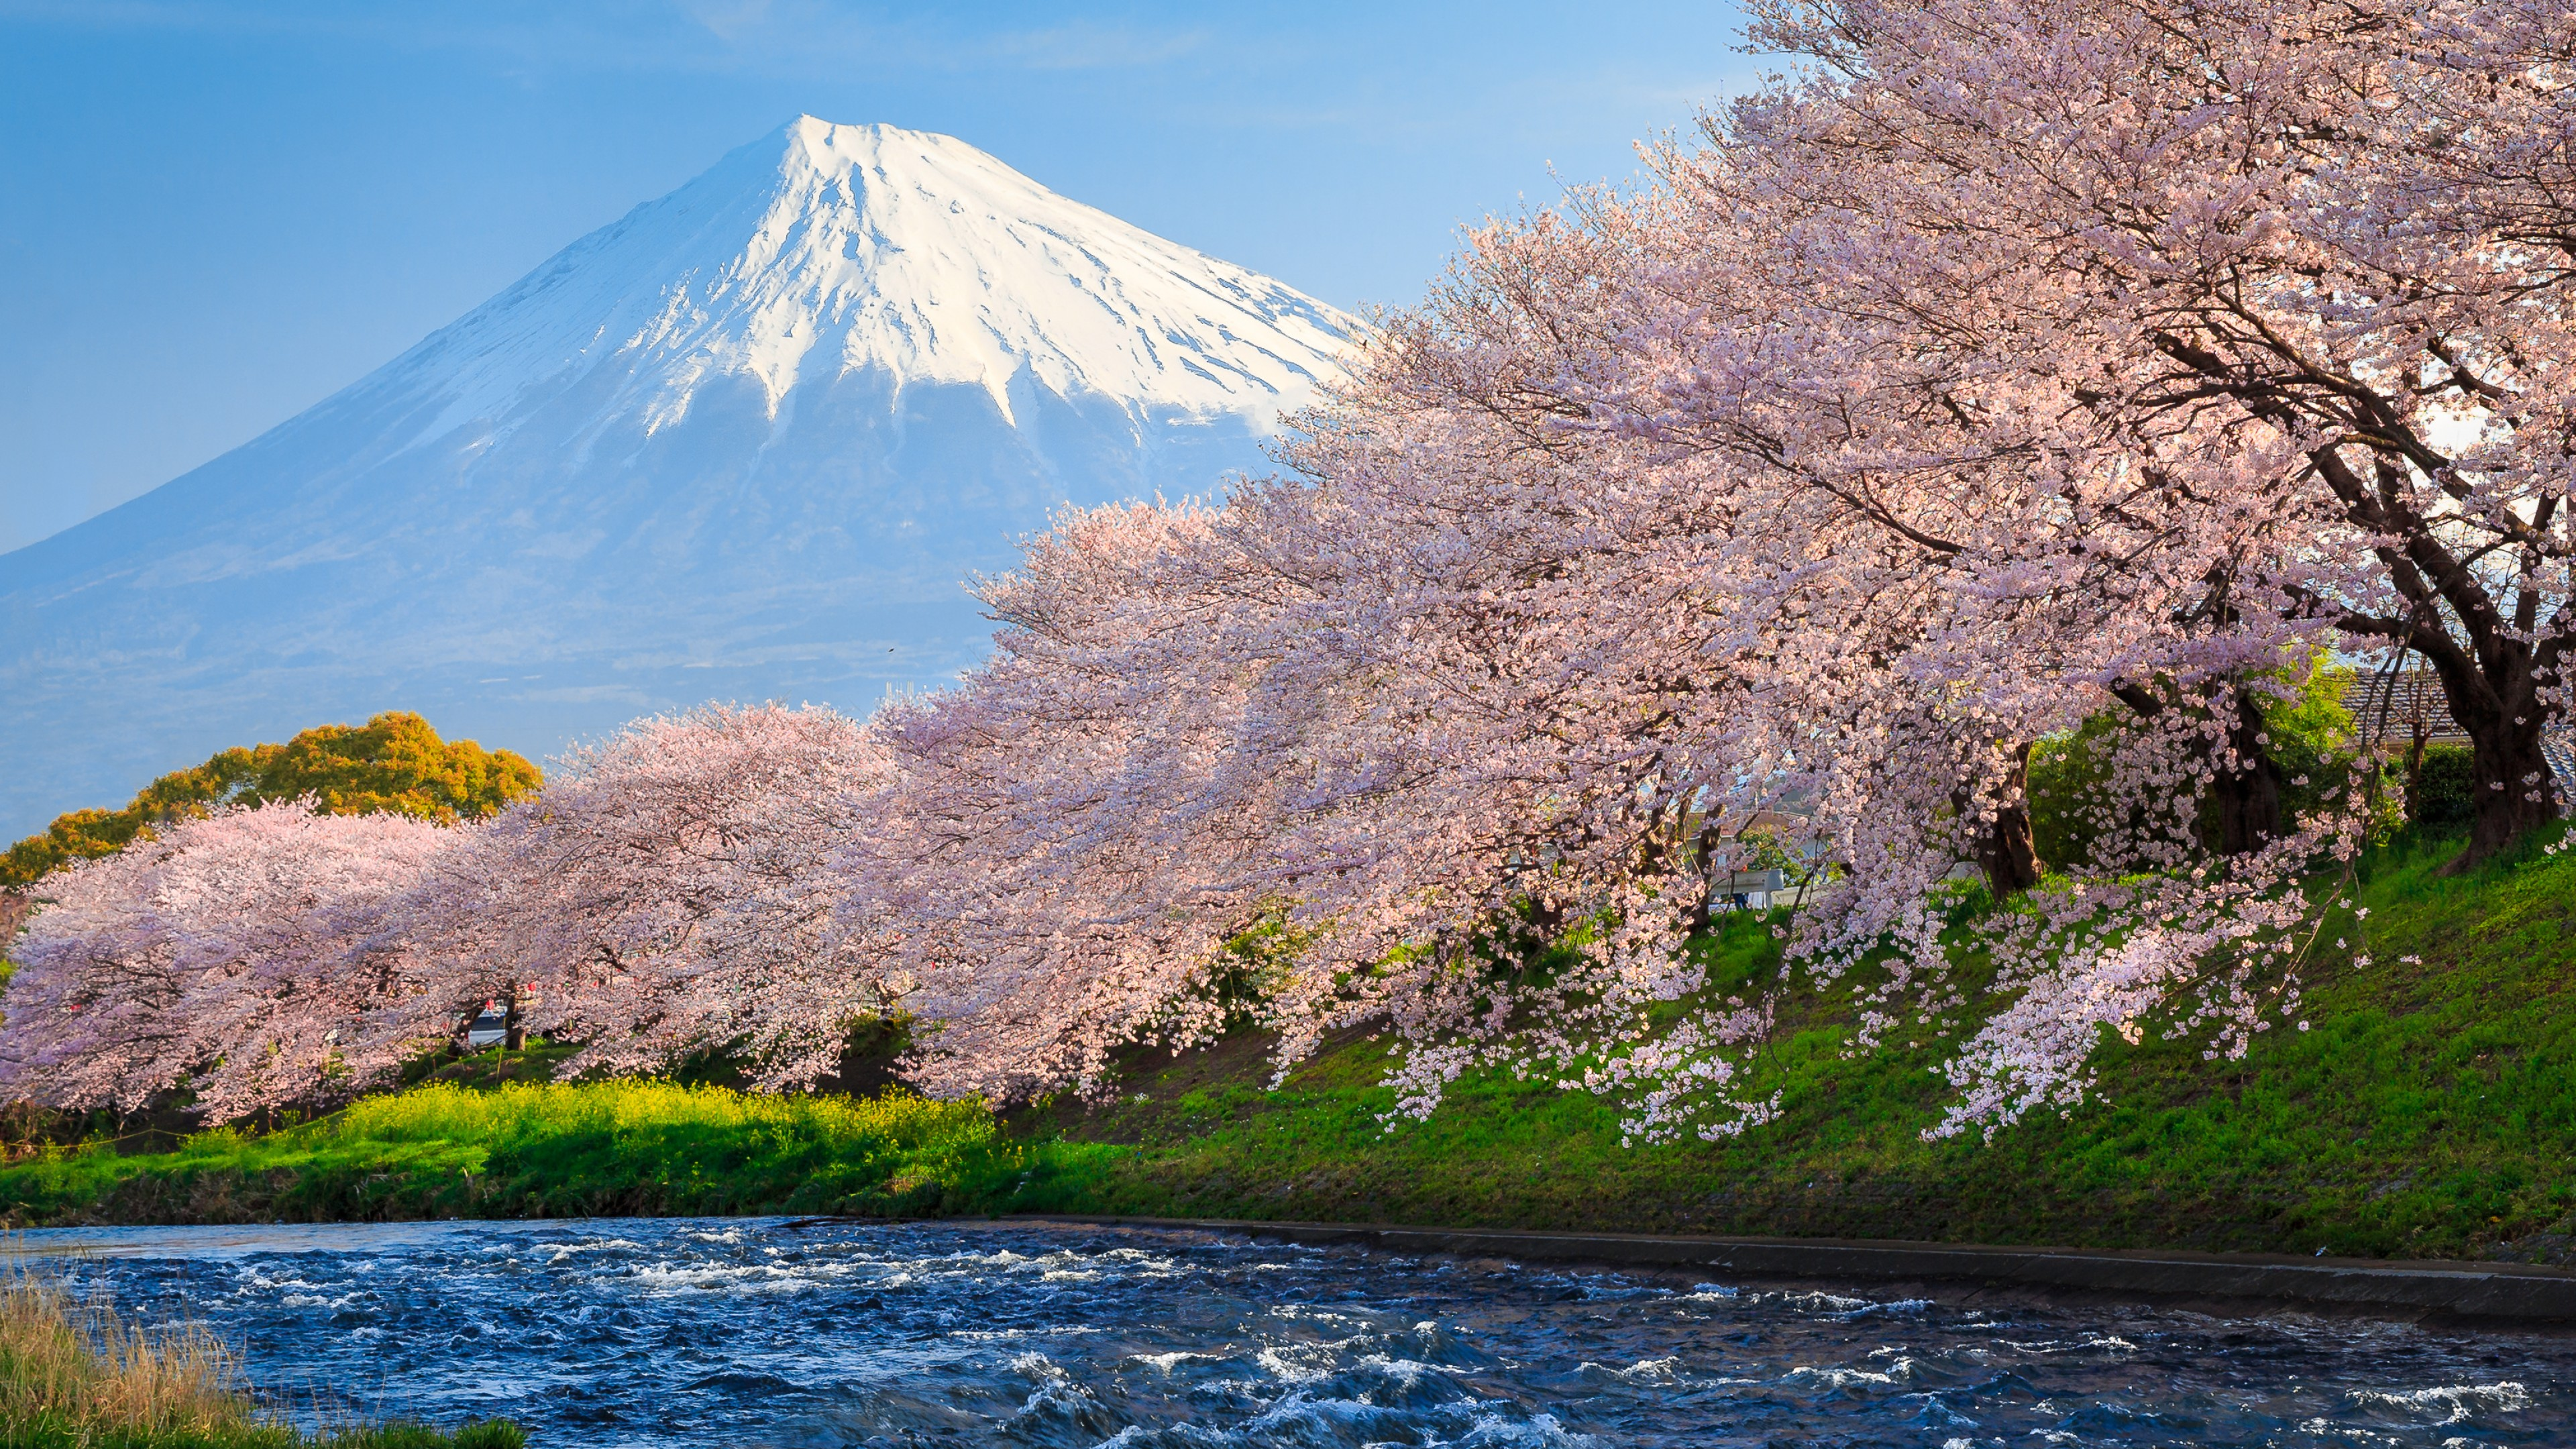 Wallpaper Fuji 4k Hd Wallpaper Sakura River Japan Travel Tourism National Geographic Traveler Photo Contest Nature 10327